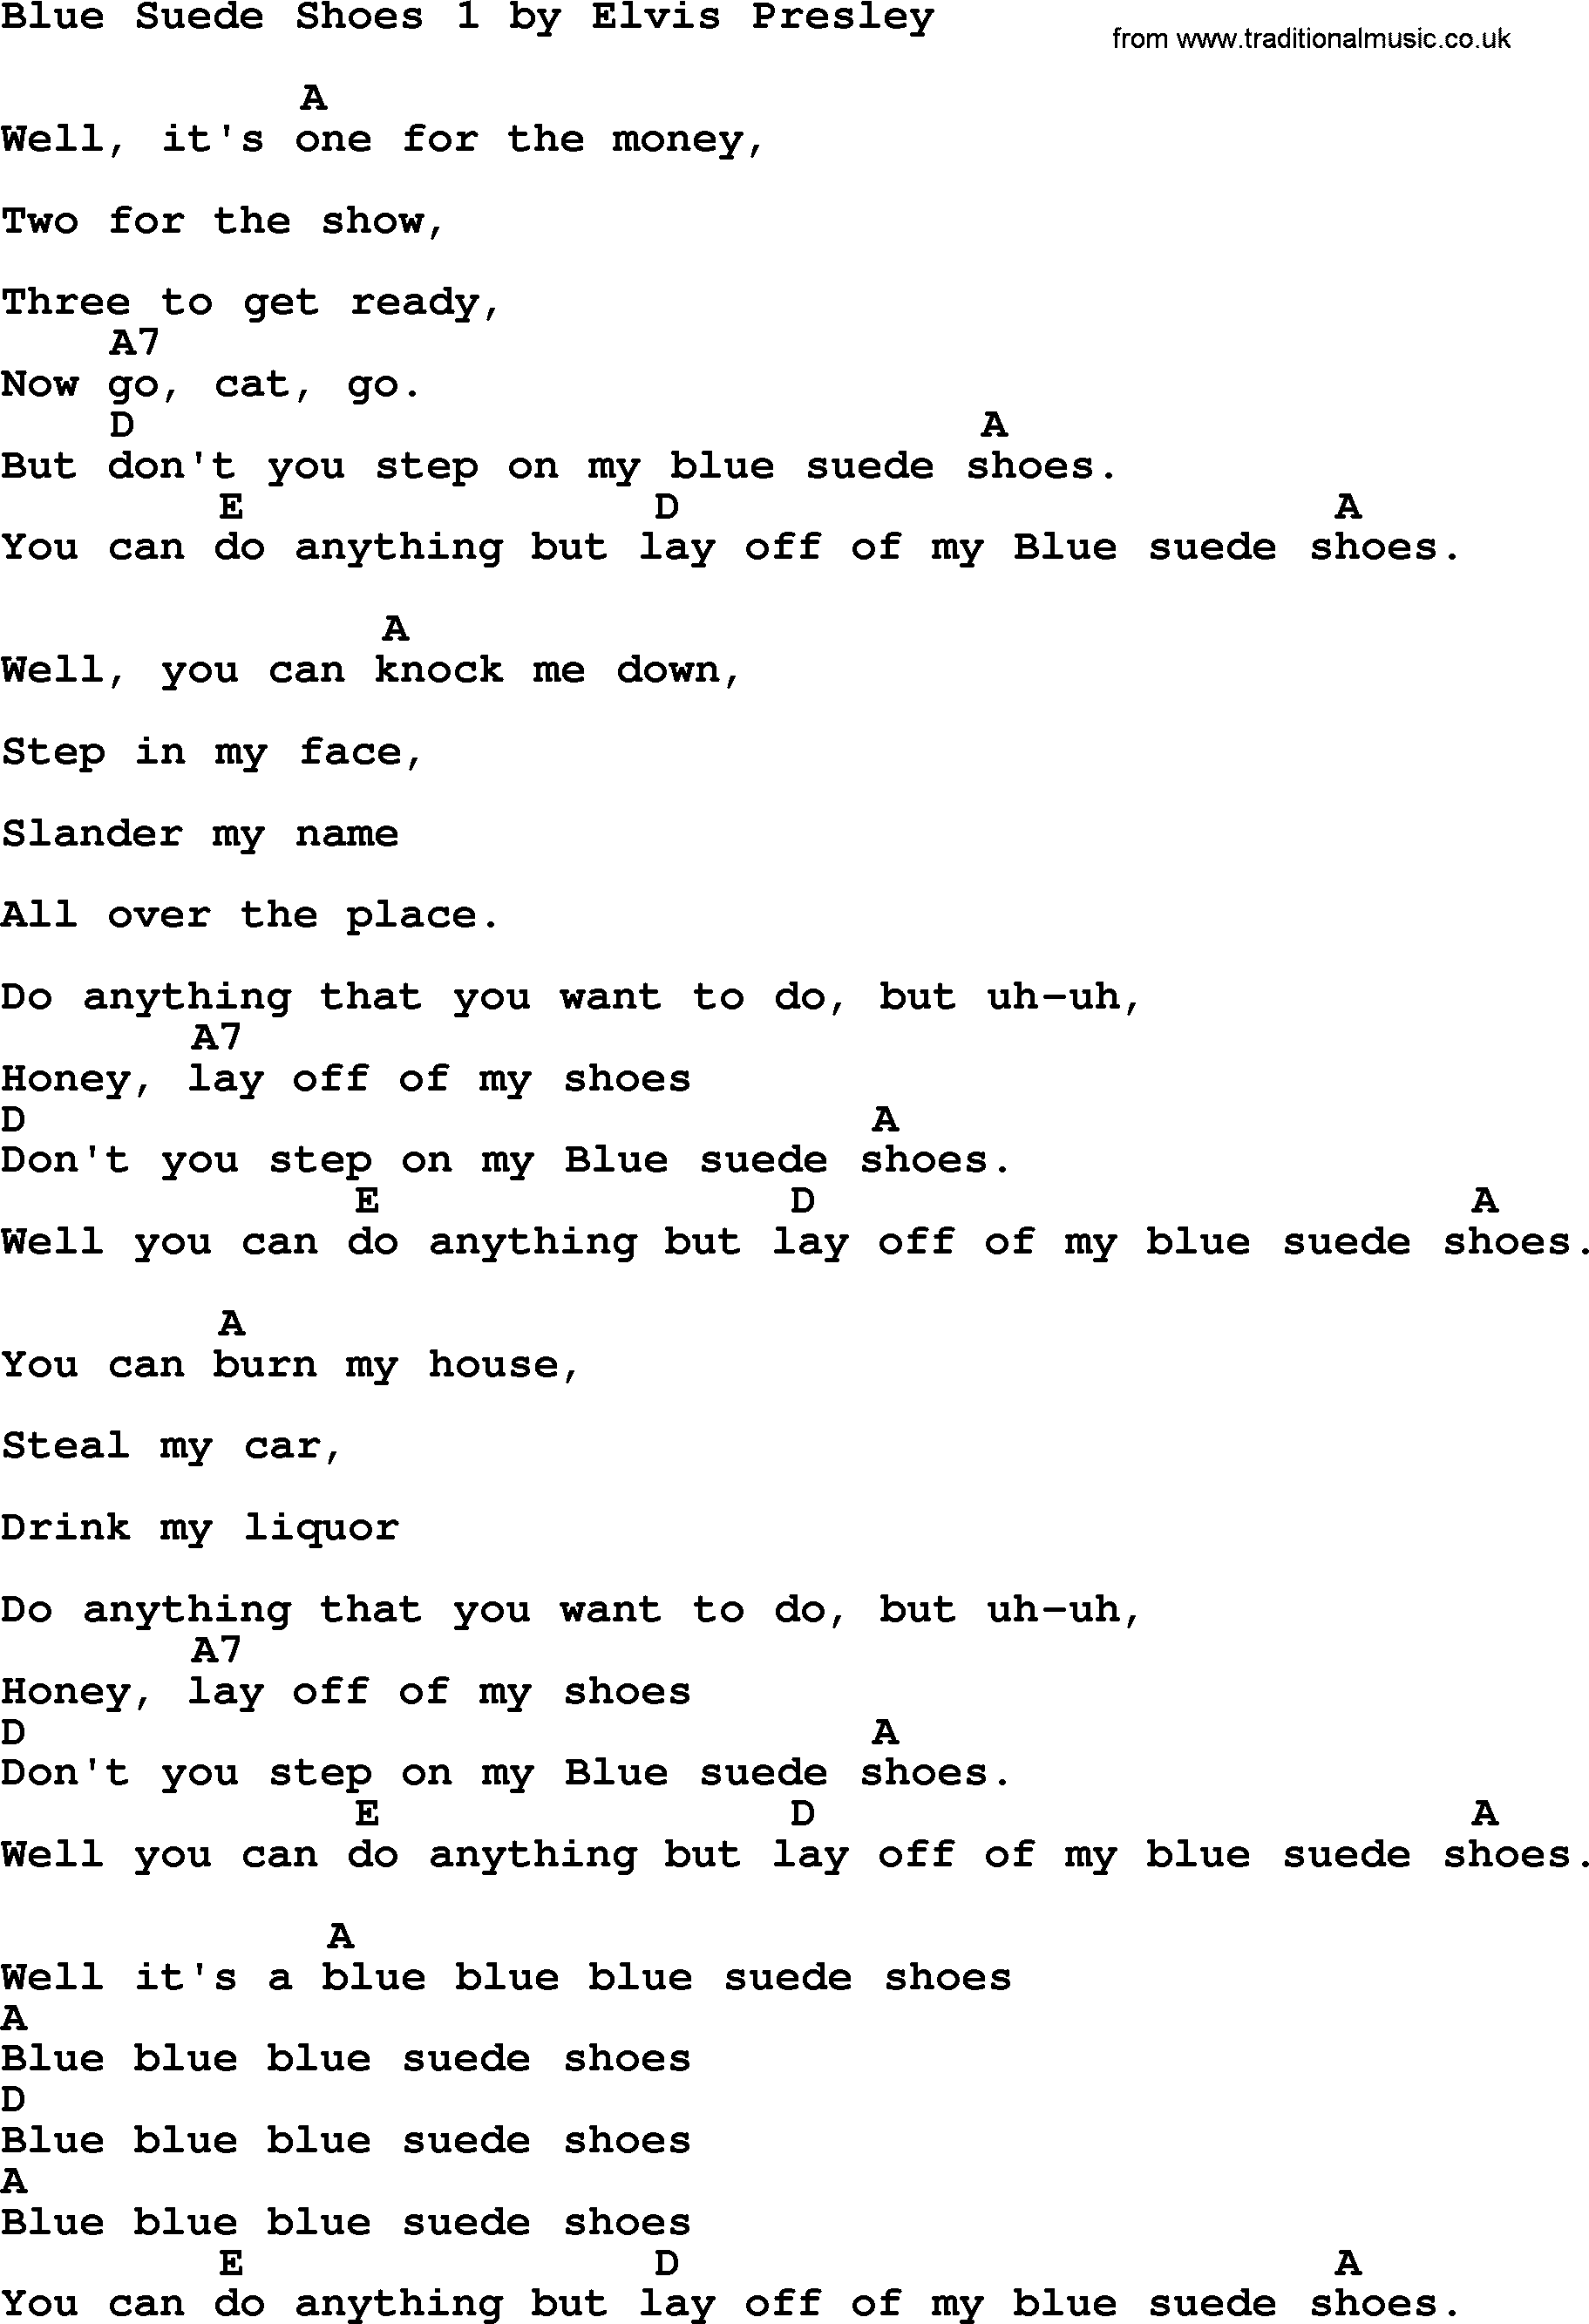 Blue Suede Shoes Lyrics And Chords